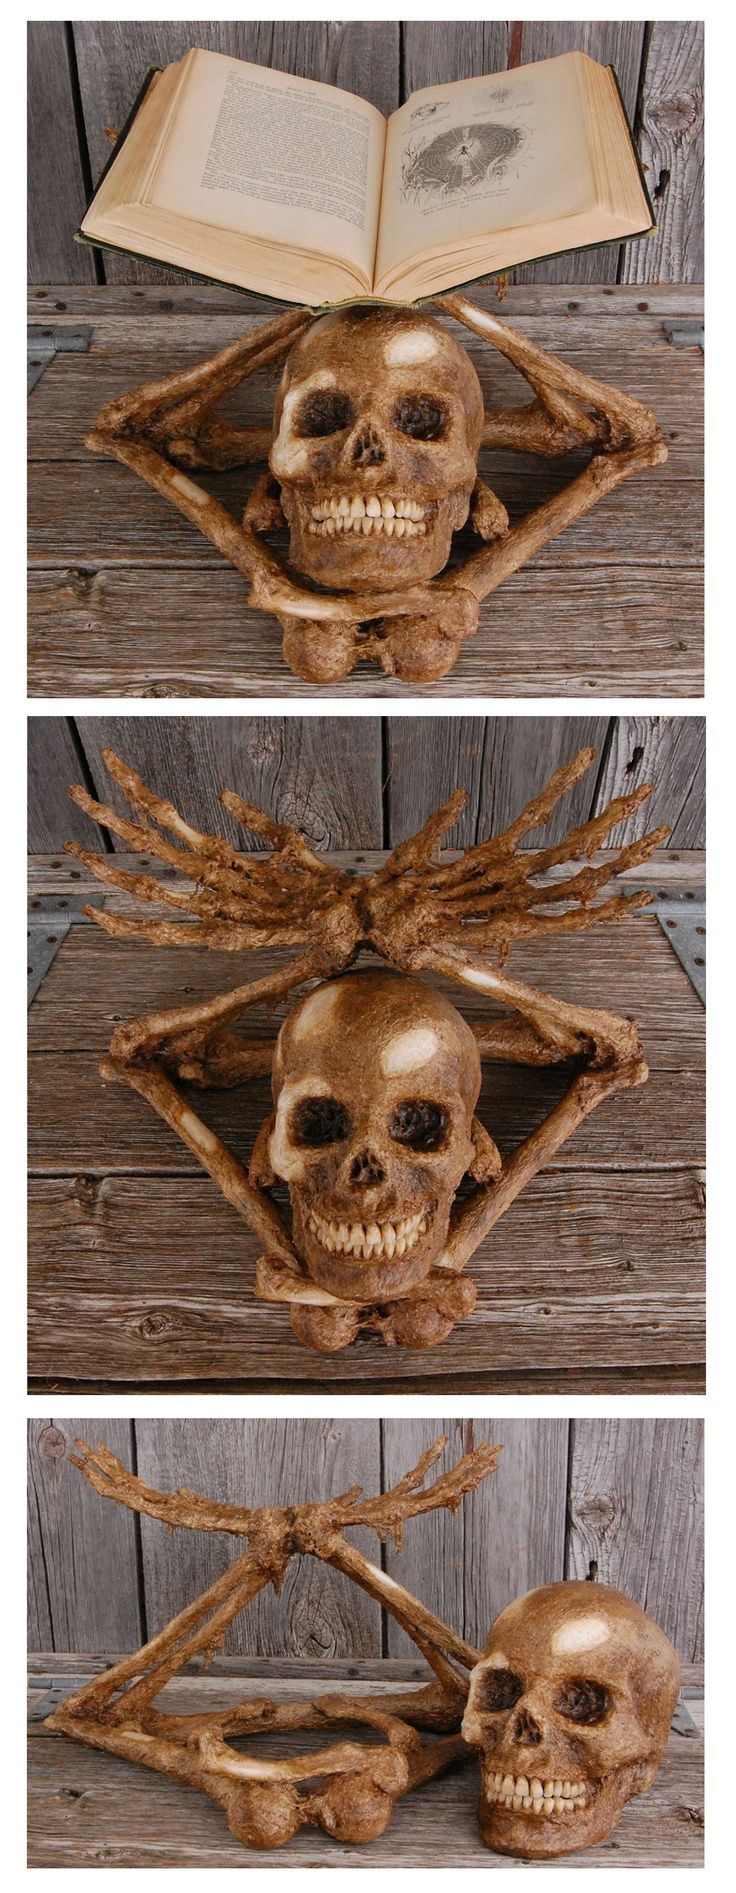 Awesomely creepy skeleton book shelf for sale by Behind the Rows Studios at MoreThanHorror.com